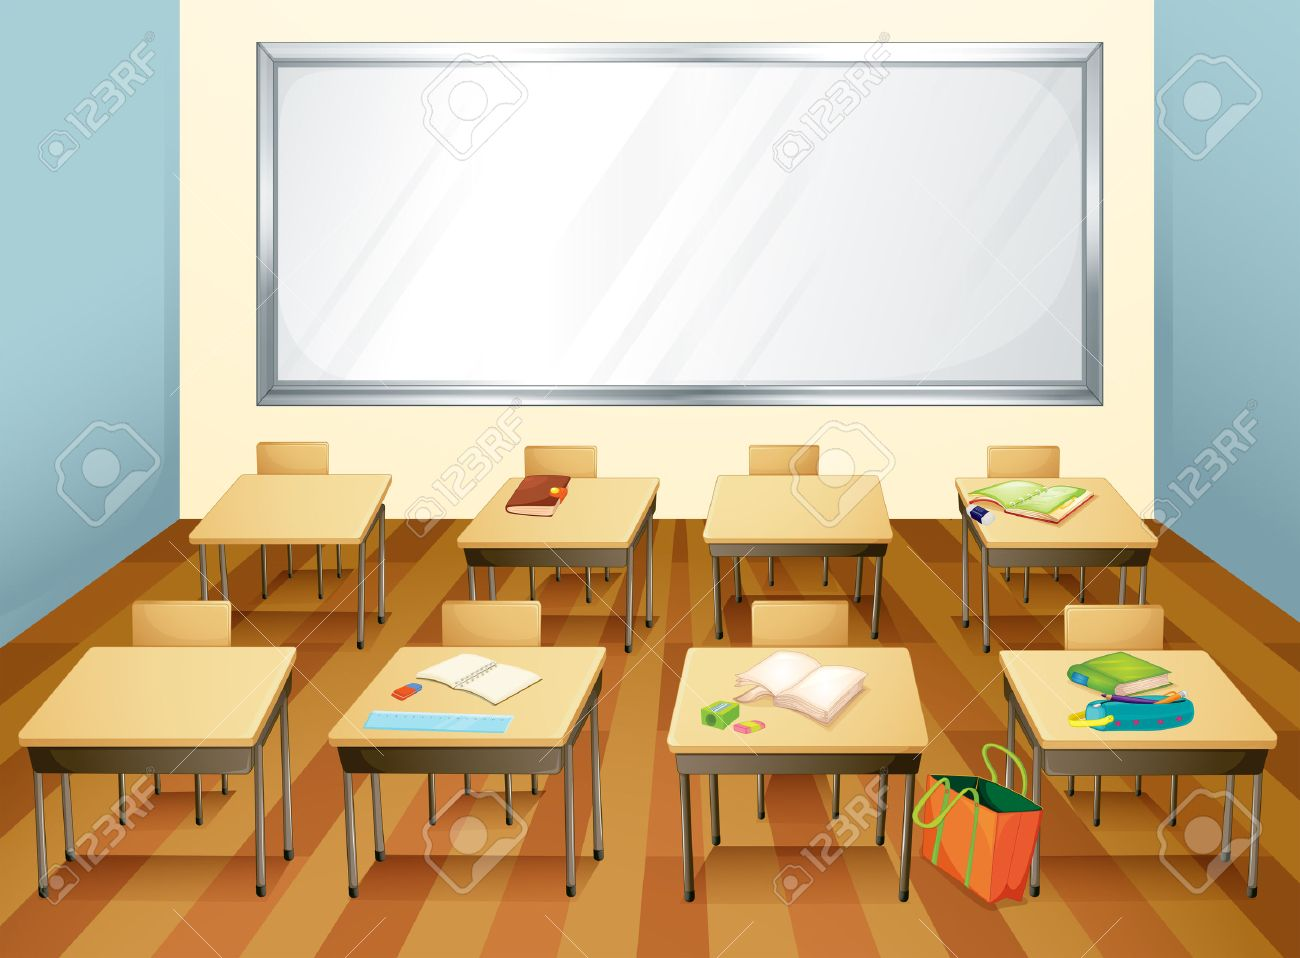 Empty classroom clipart 3 » Clipart Station.